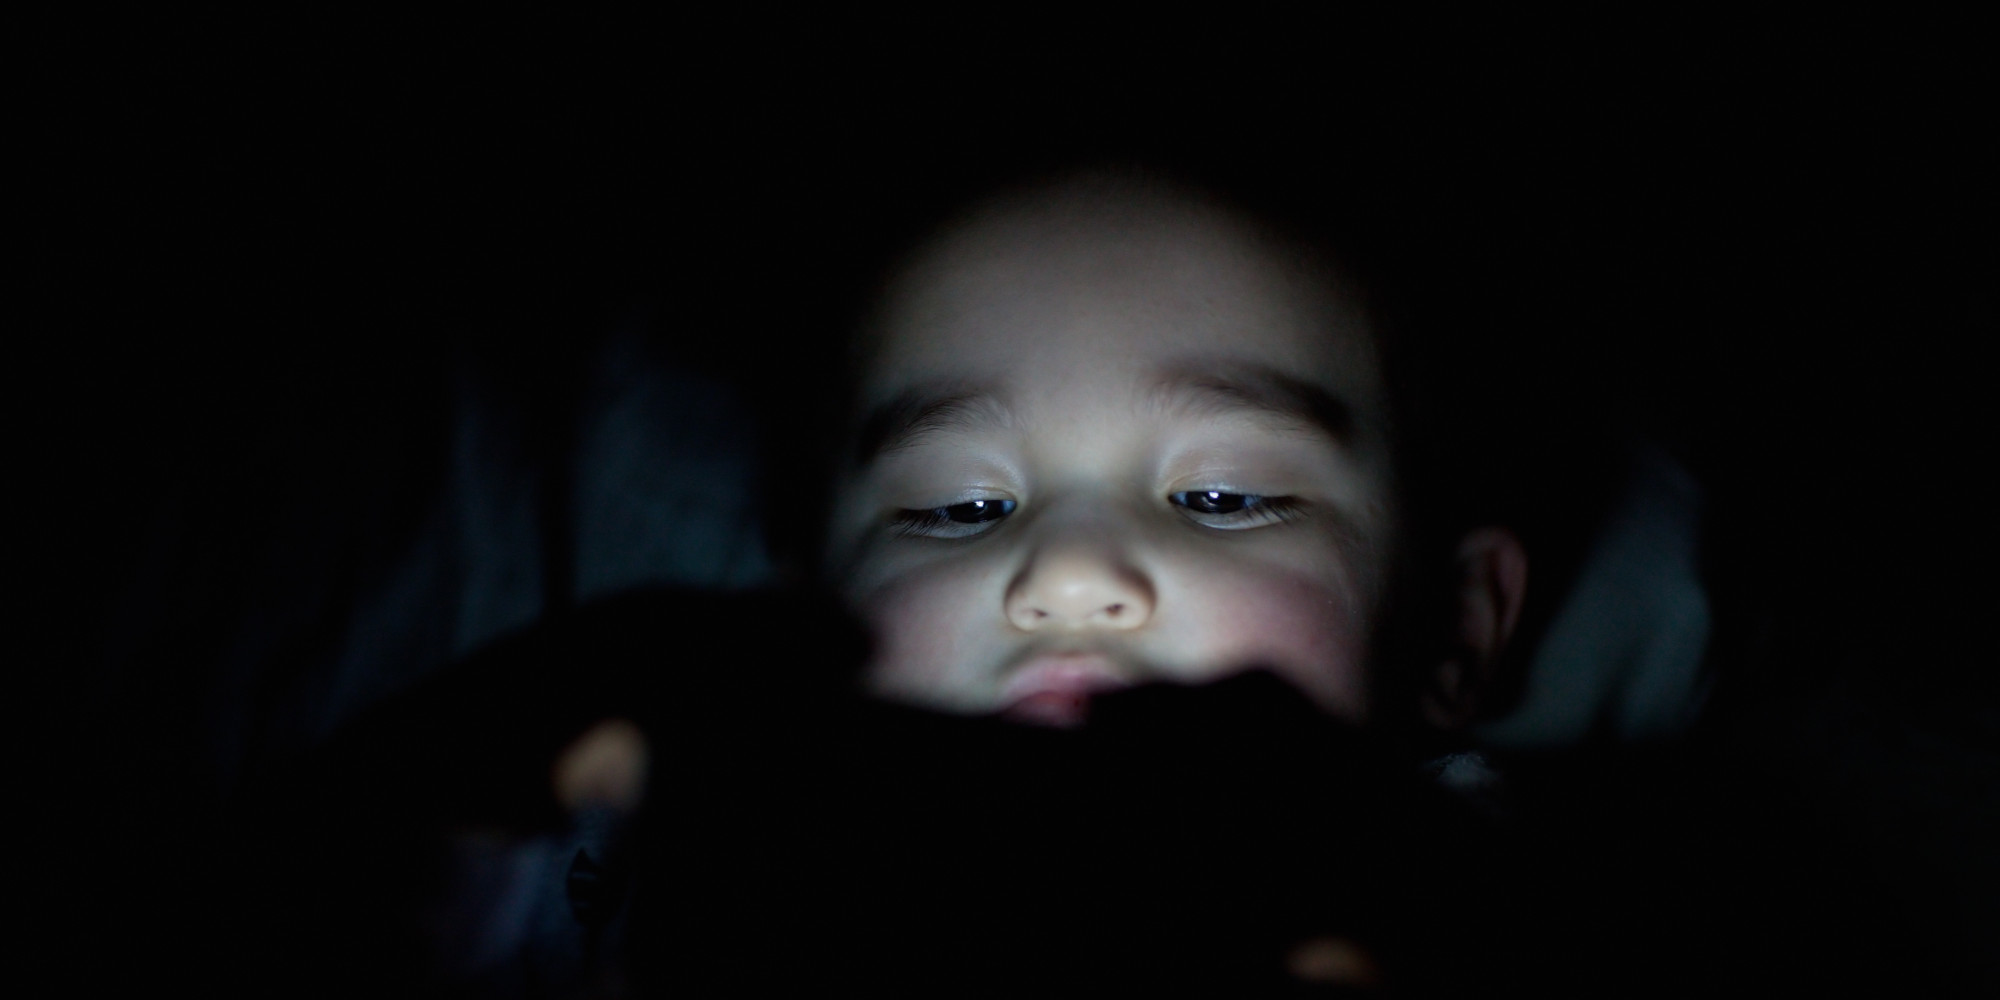 http://www.huffingtonpost.com/2015/01/06/children-electronics-sleep_n_6422162.html?utm_hp_ref=technology